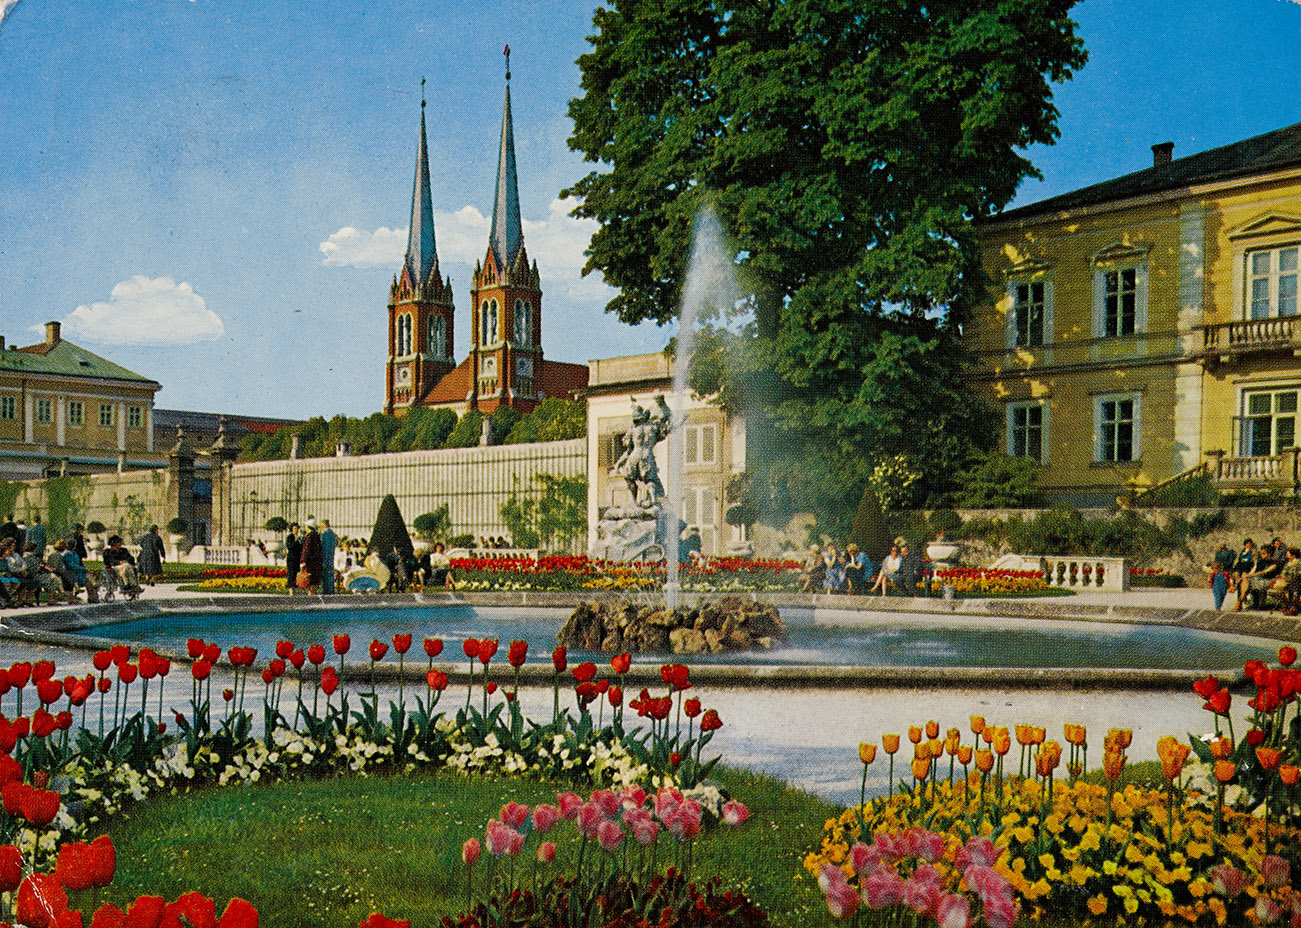 Mirabell Gardens and St. Andrew's Church, 1960-65, inv. no. F 23279